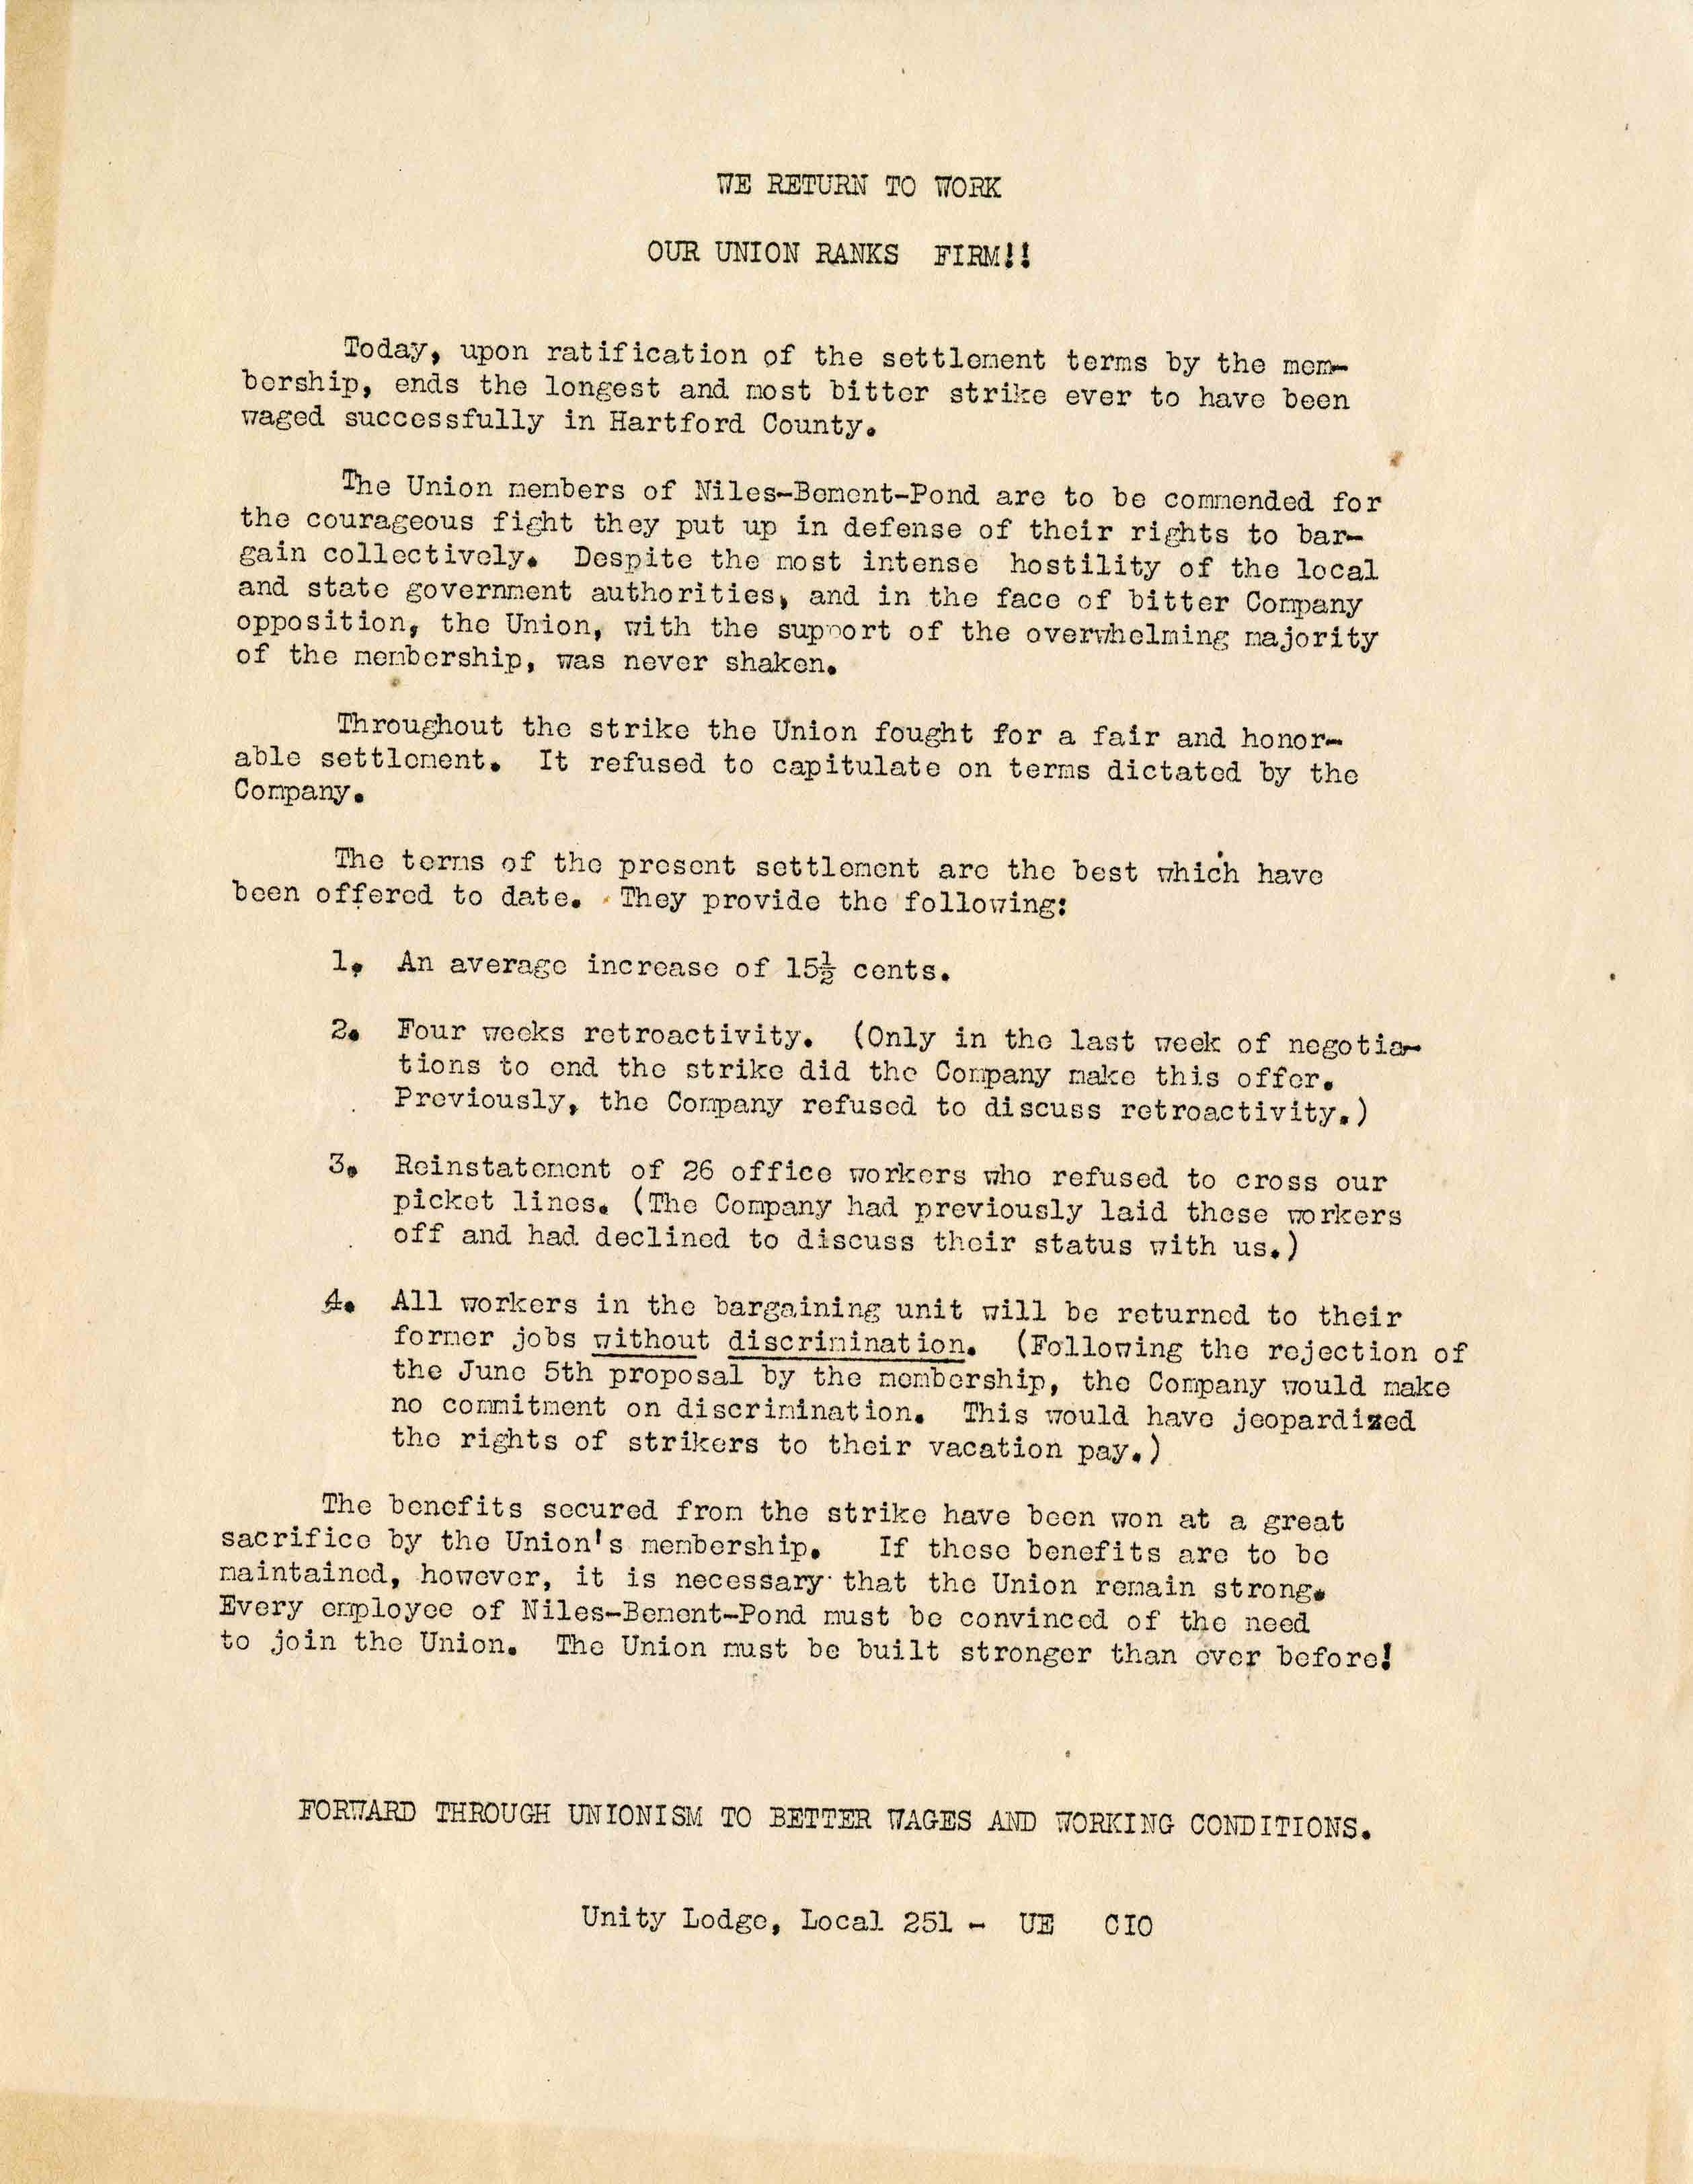 Letter to membership about returning to work after a strike, from the Henry Stieg Papers, 1946